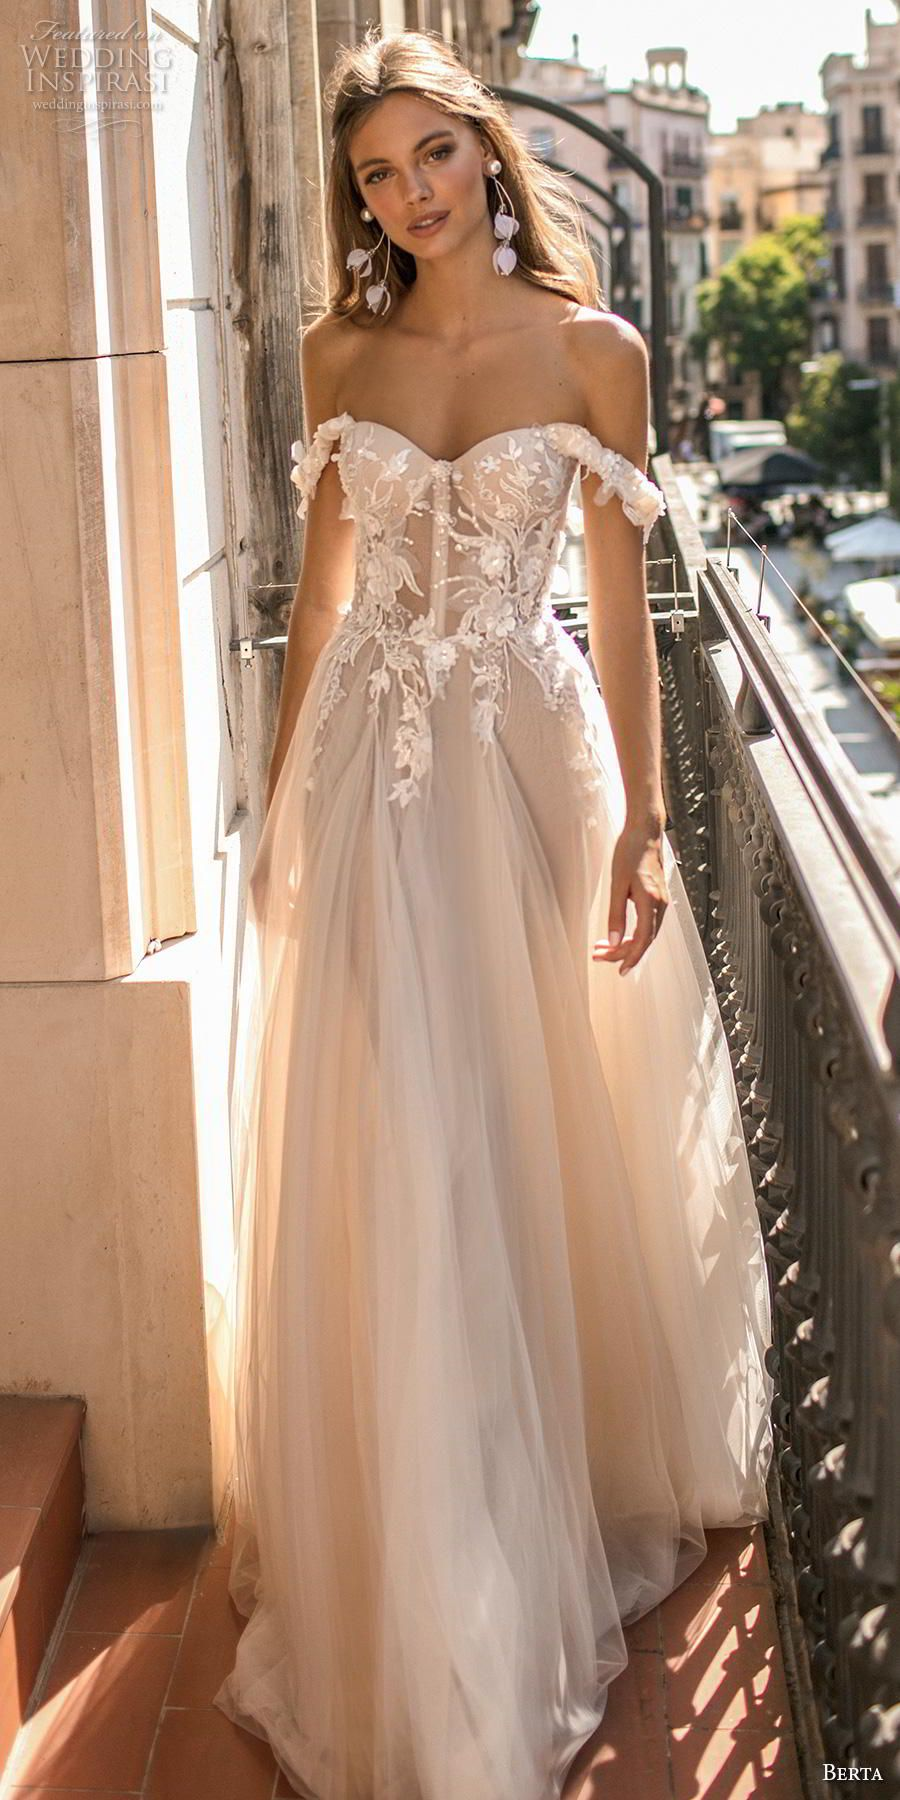 550a045fd92 Gorgeous Embellished Wedding Dresses. Image via  Weddinginspirasi. anna  campbell 2019 bridal half handkerchief sleeves v neck full embellishment  romantic ...